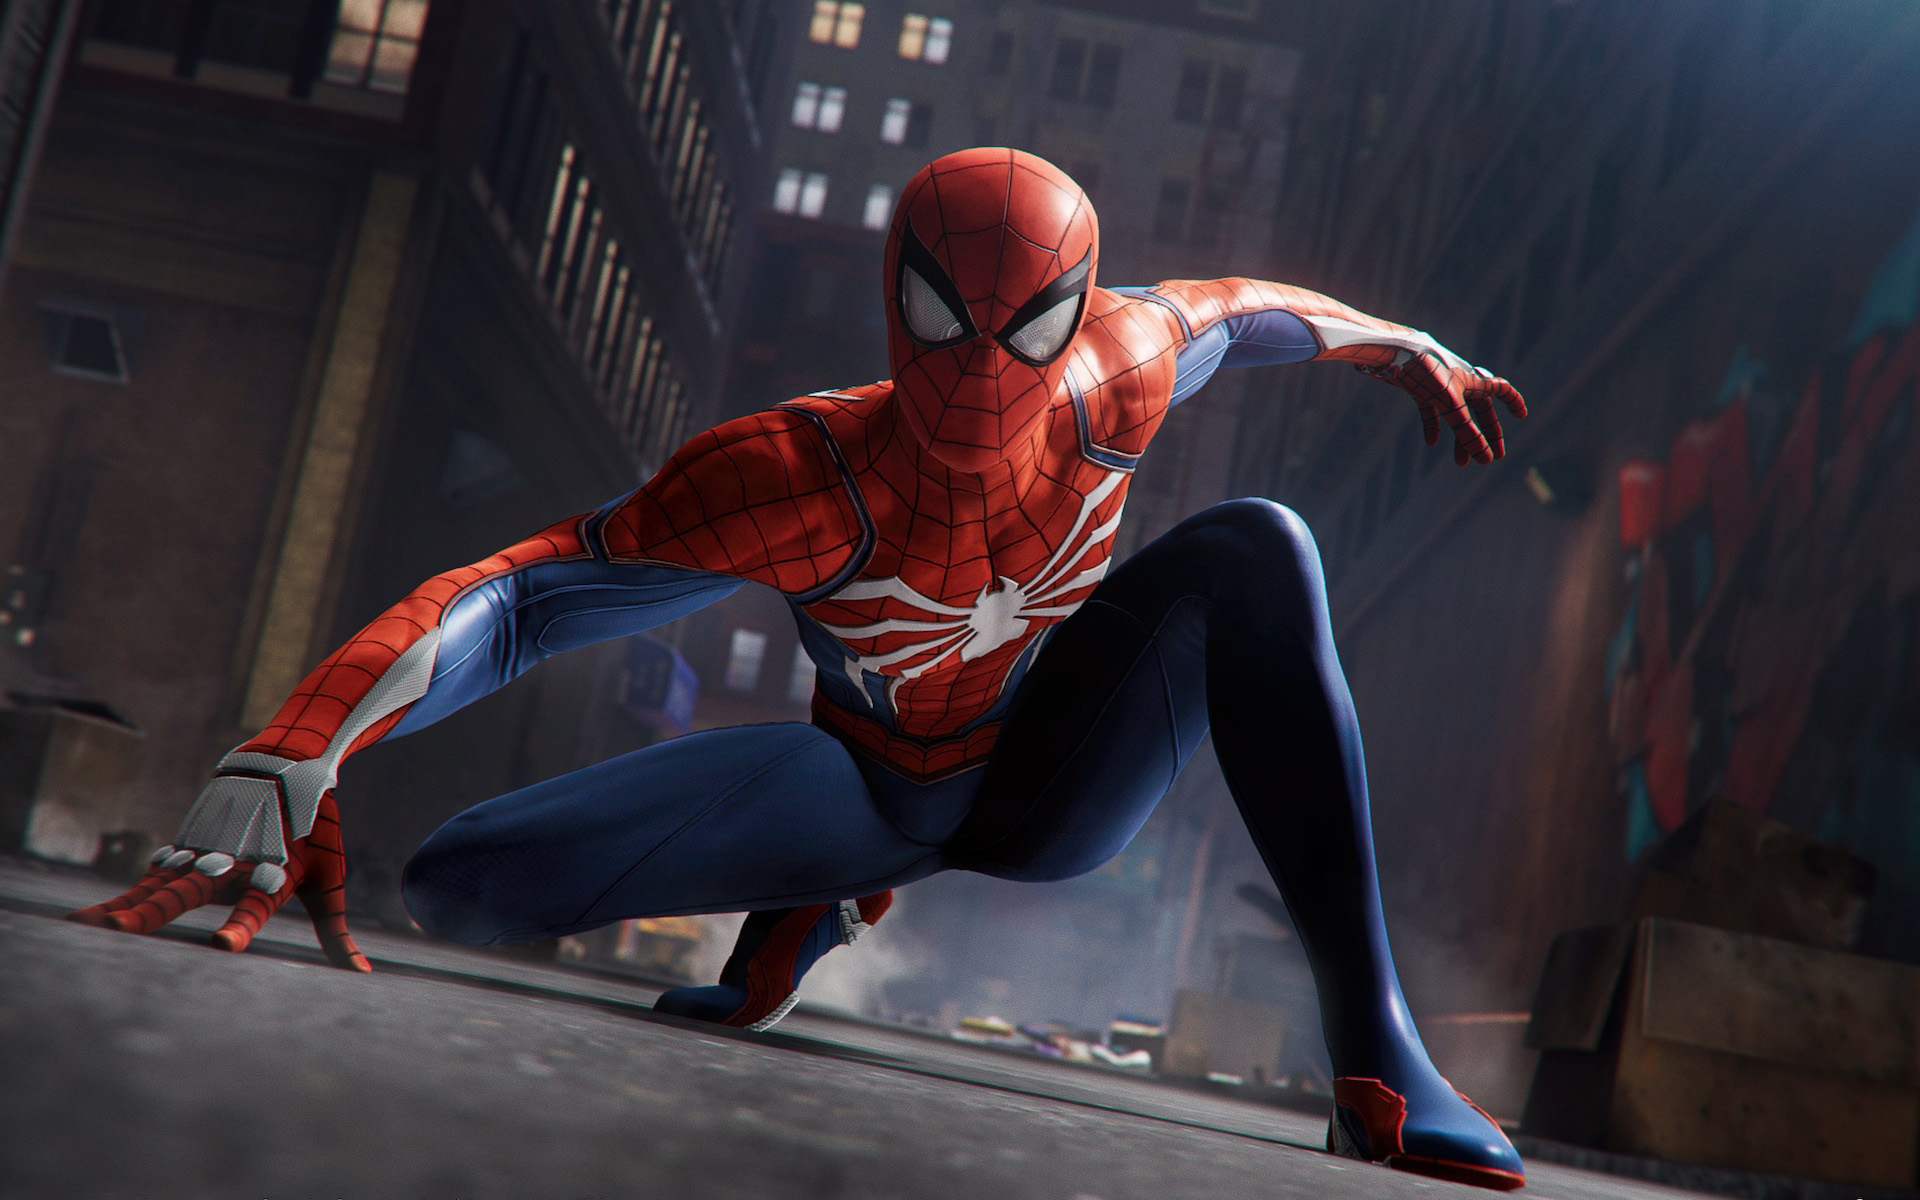 Spiderman - Crouching Stance